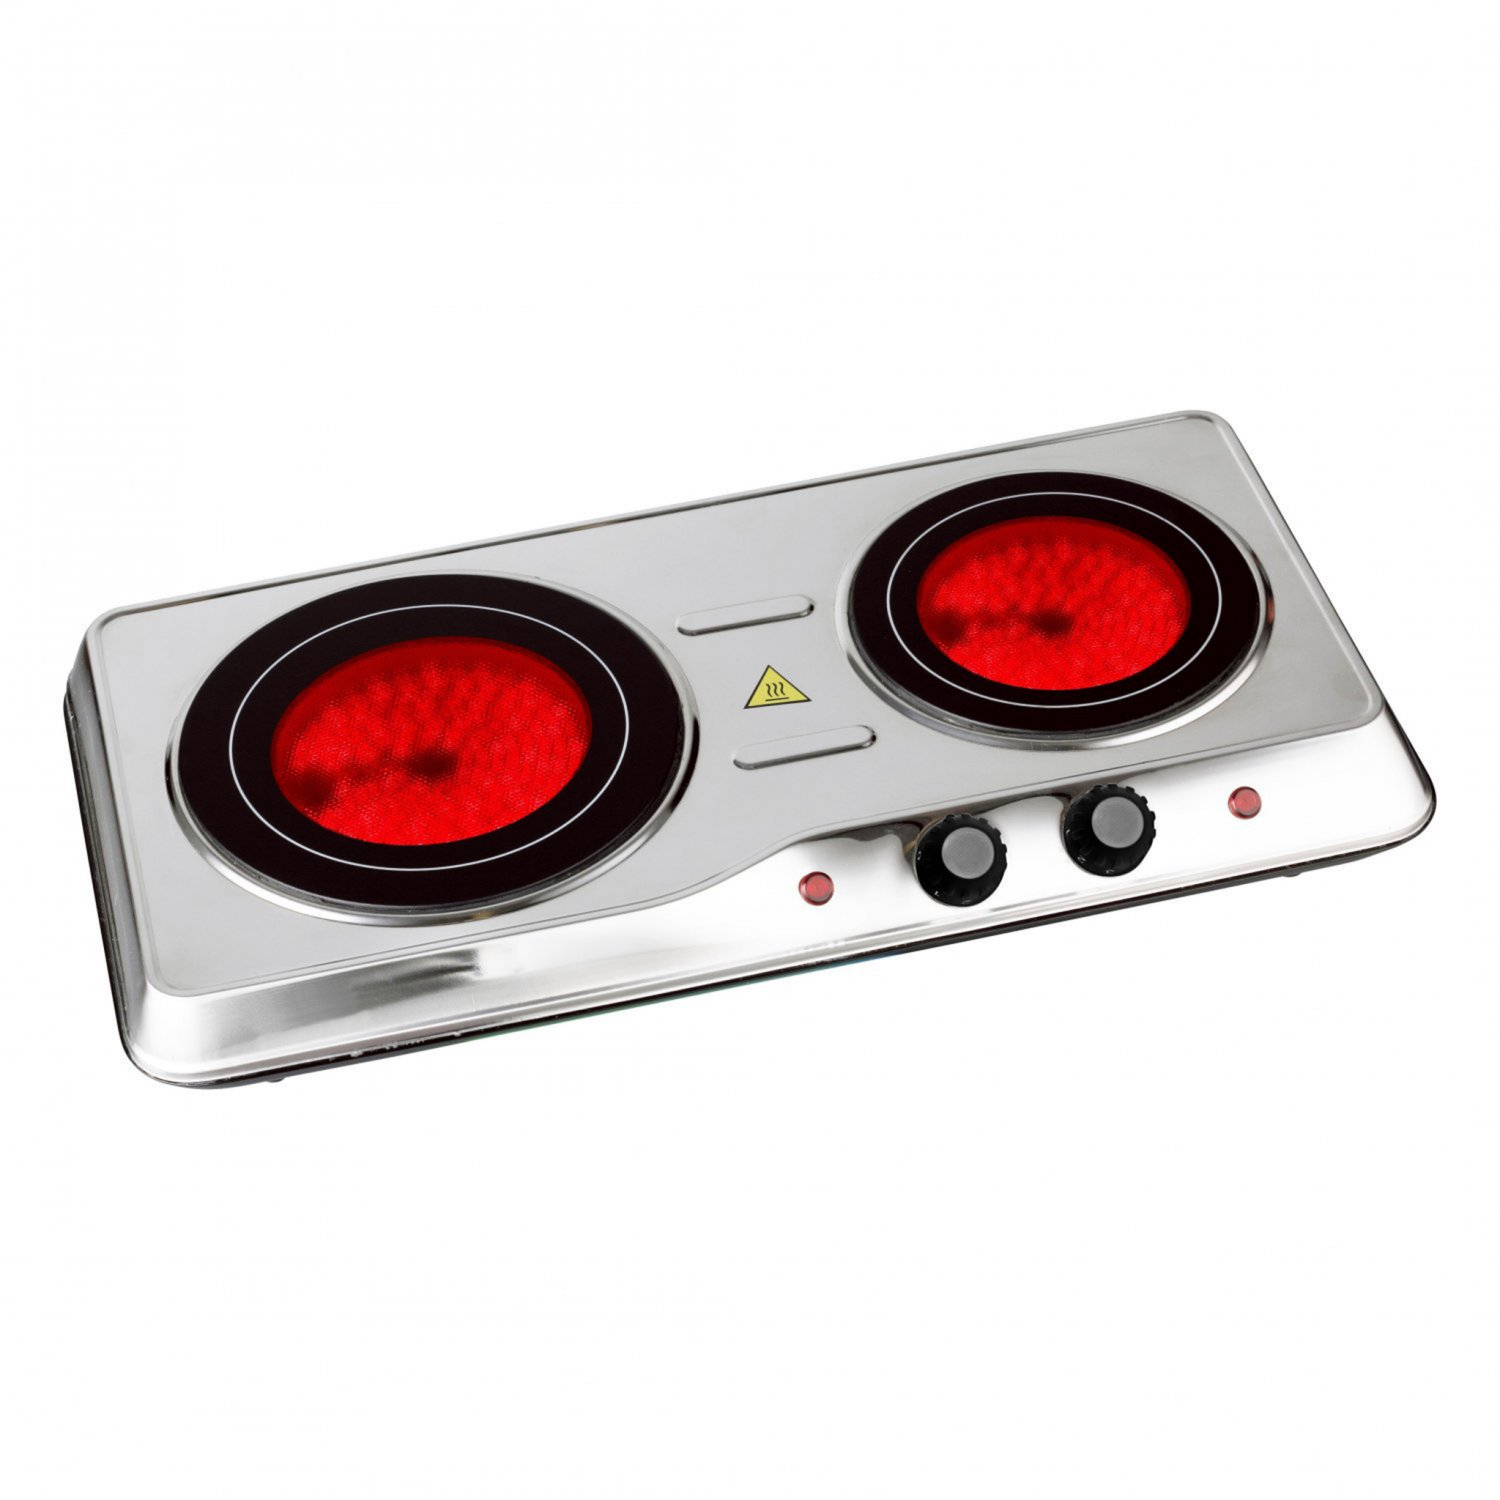 2000W Ceramic Portable Infrared Electric Double Hot Plate Hob